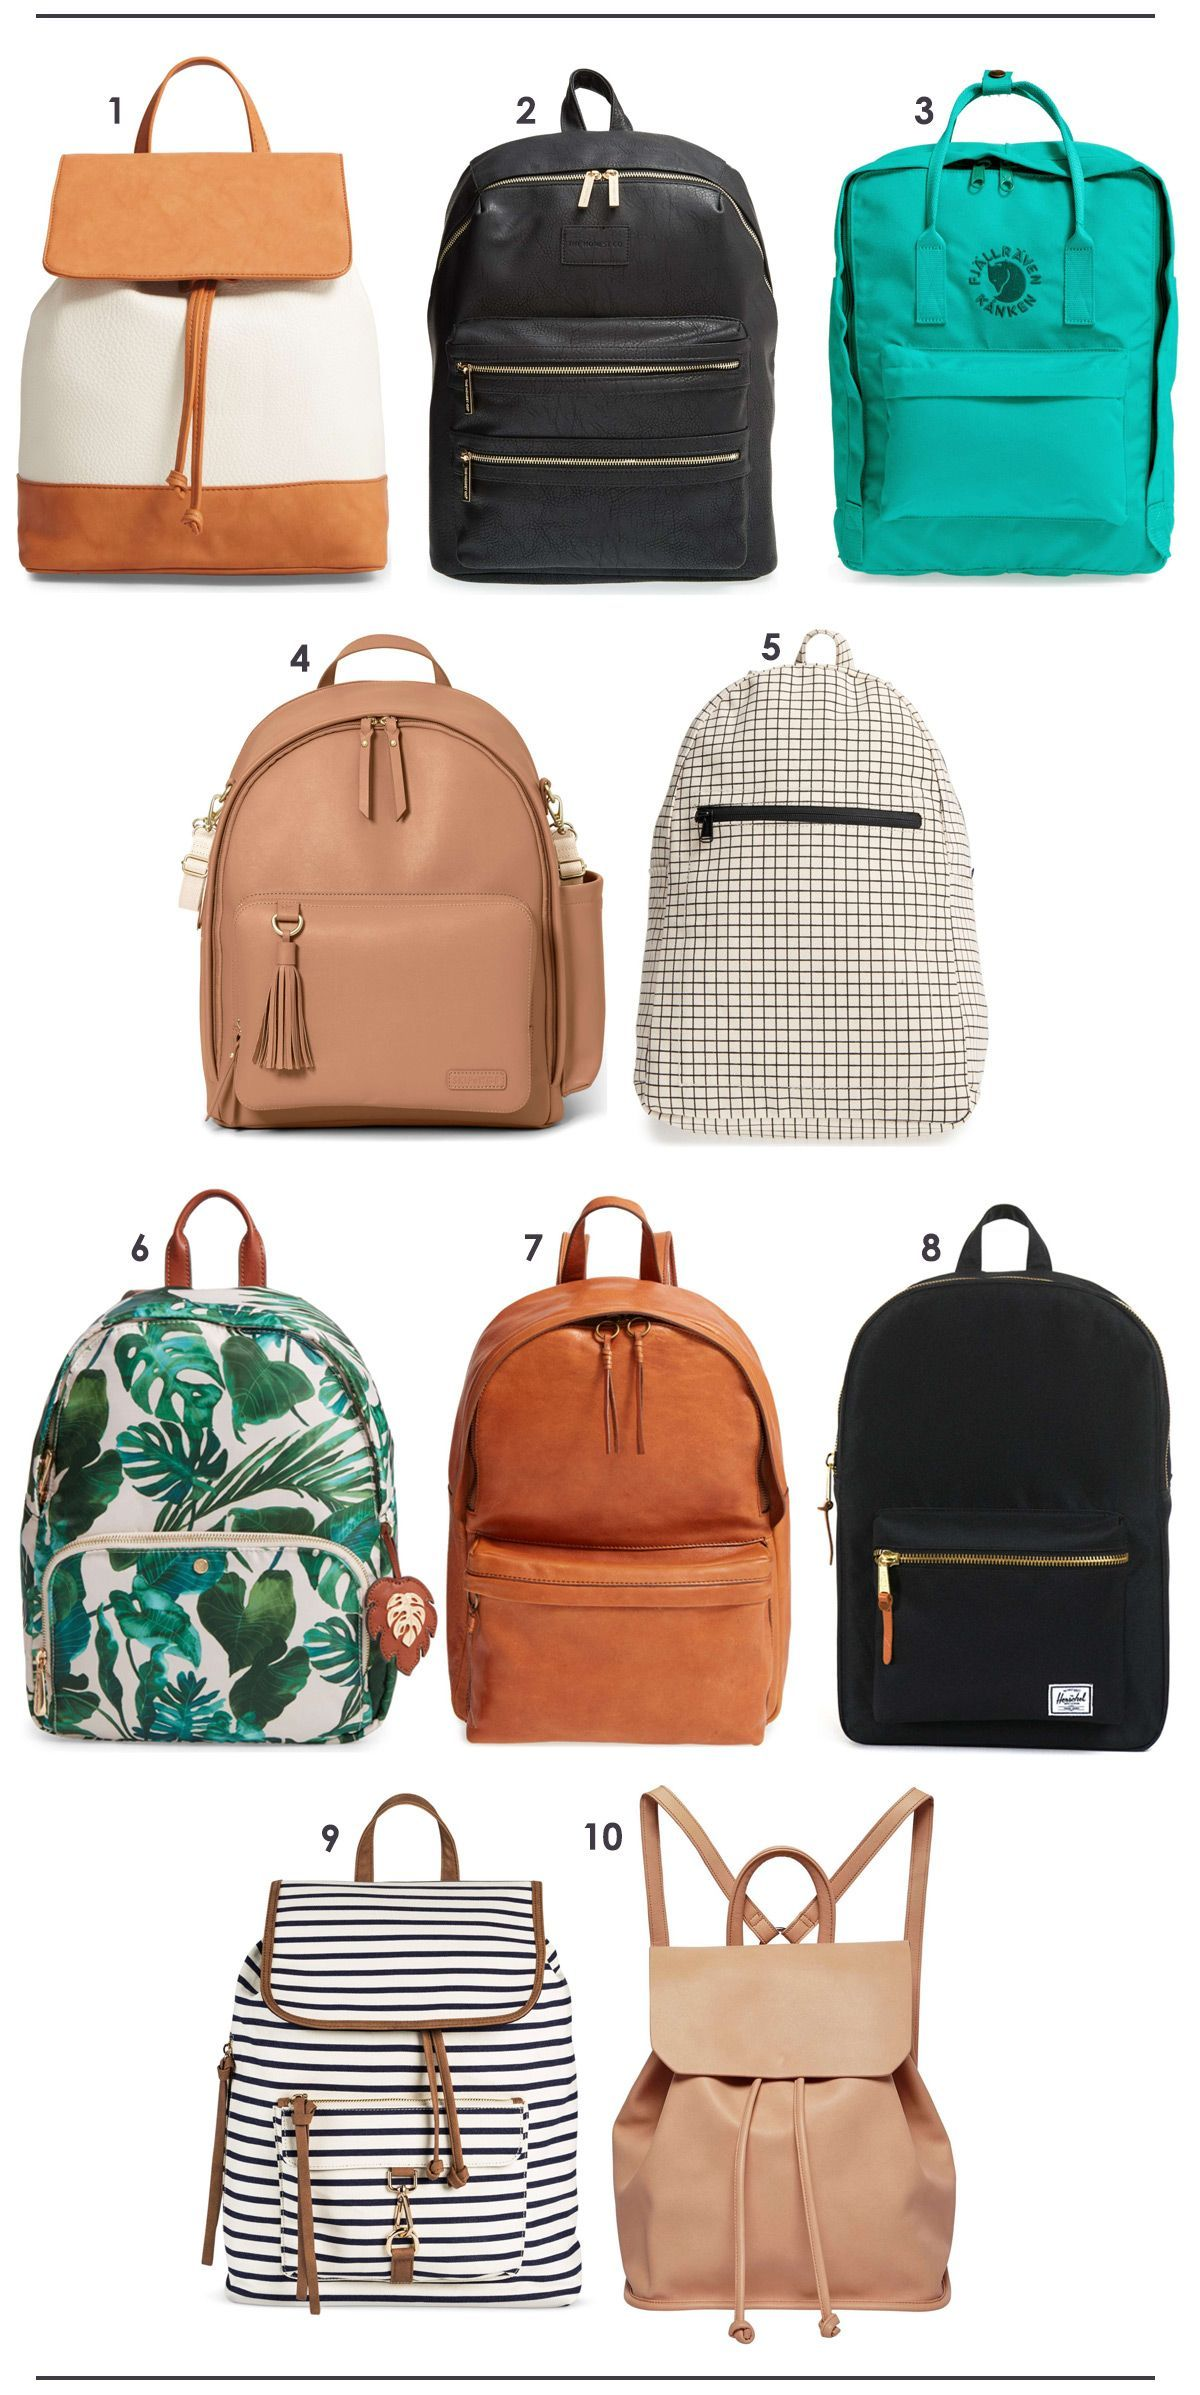 Best Purse And Diaper Bag Backpacks Lovely Indeed Pursesthatcanbeusedasdiaperbags